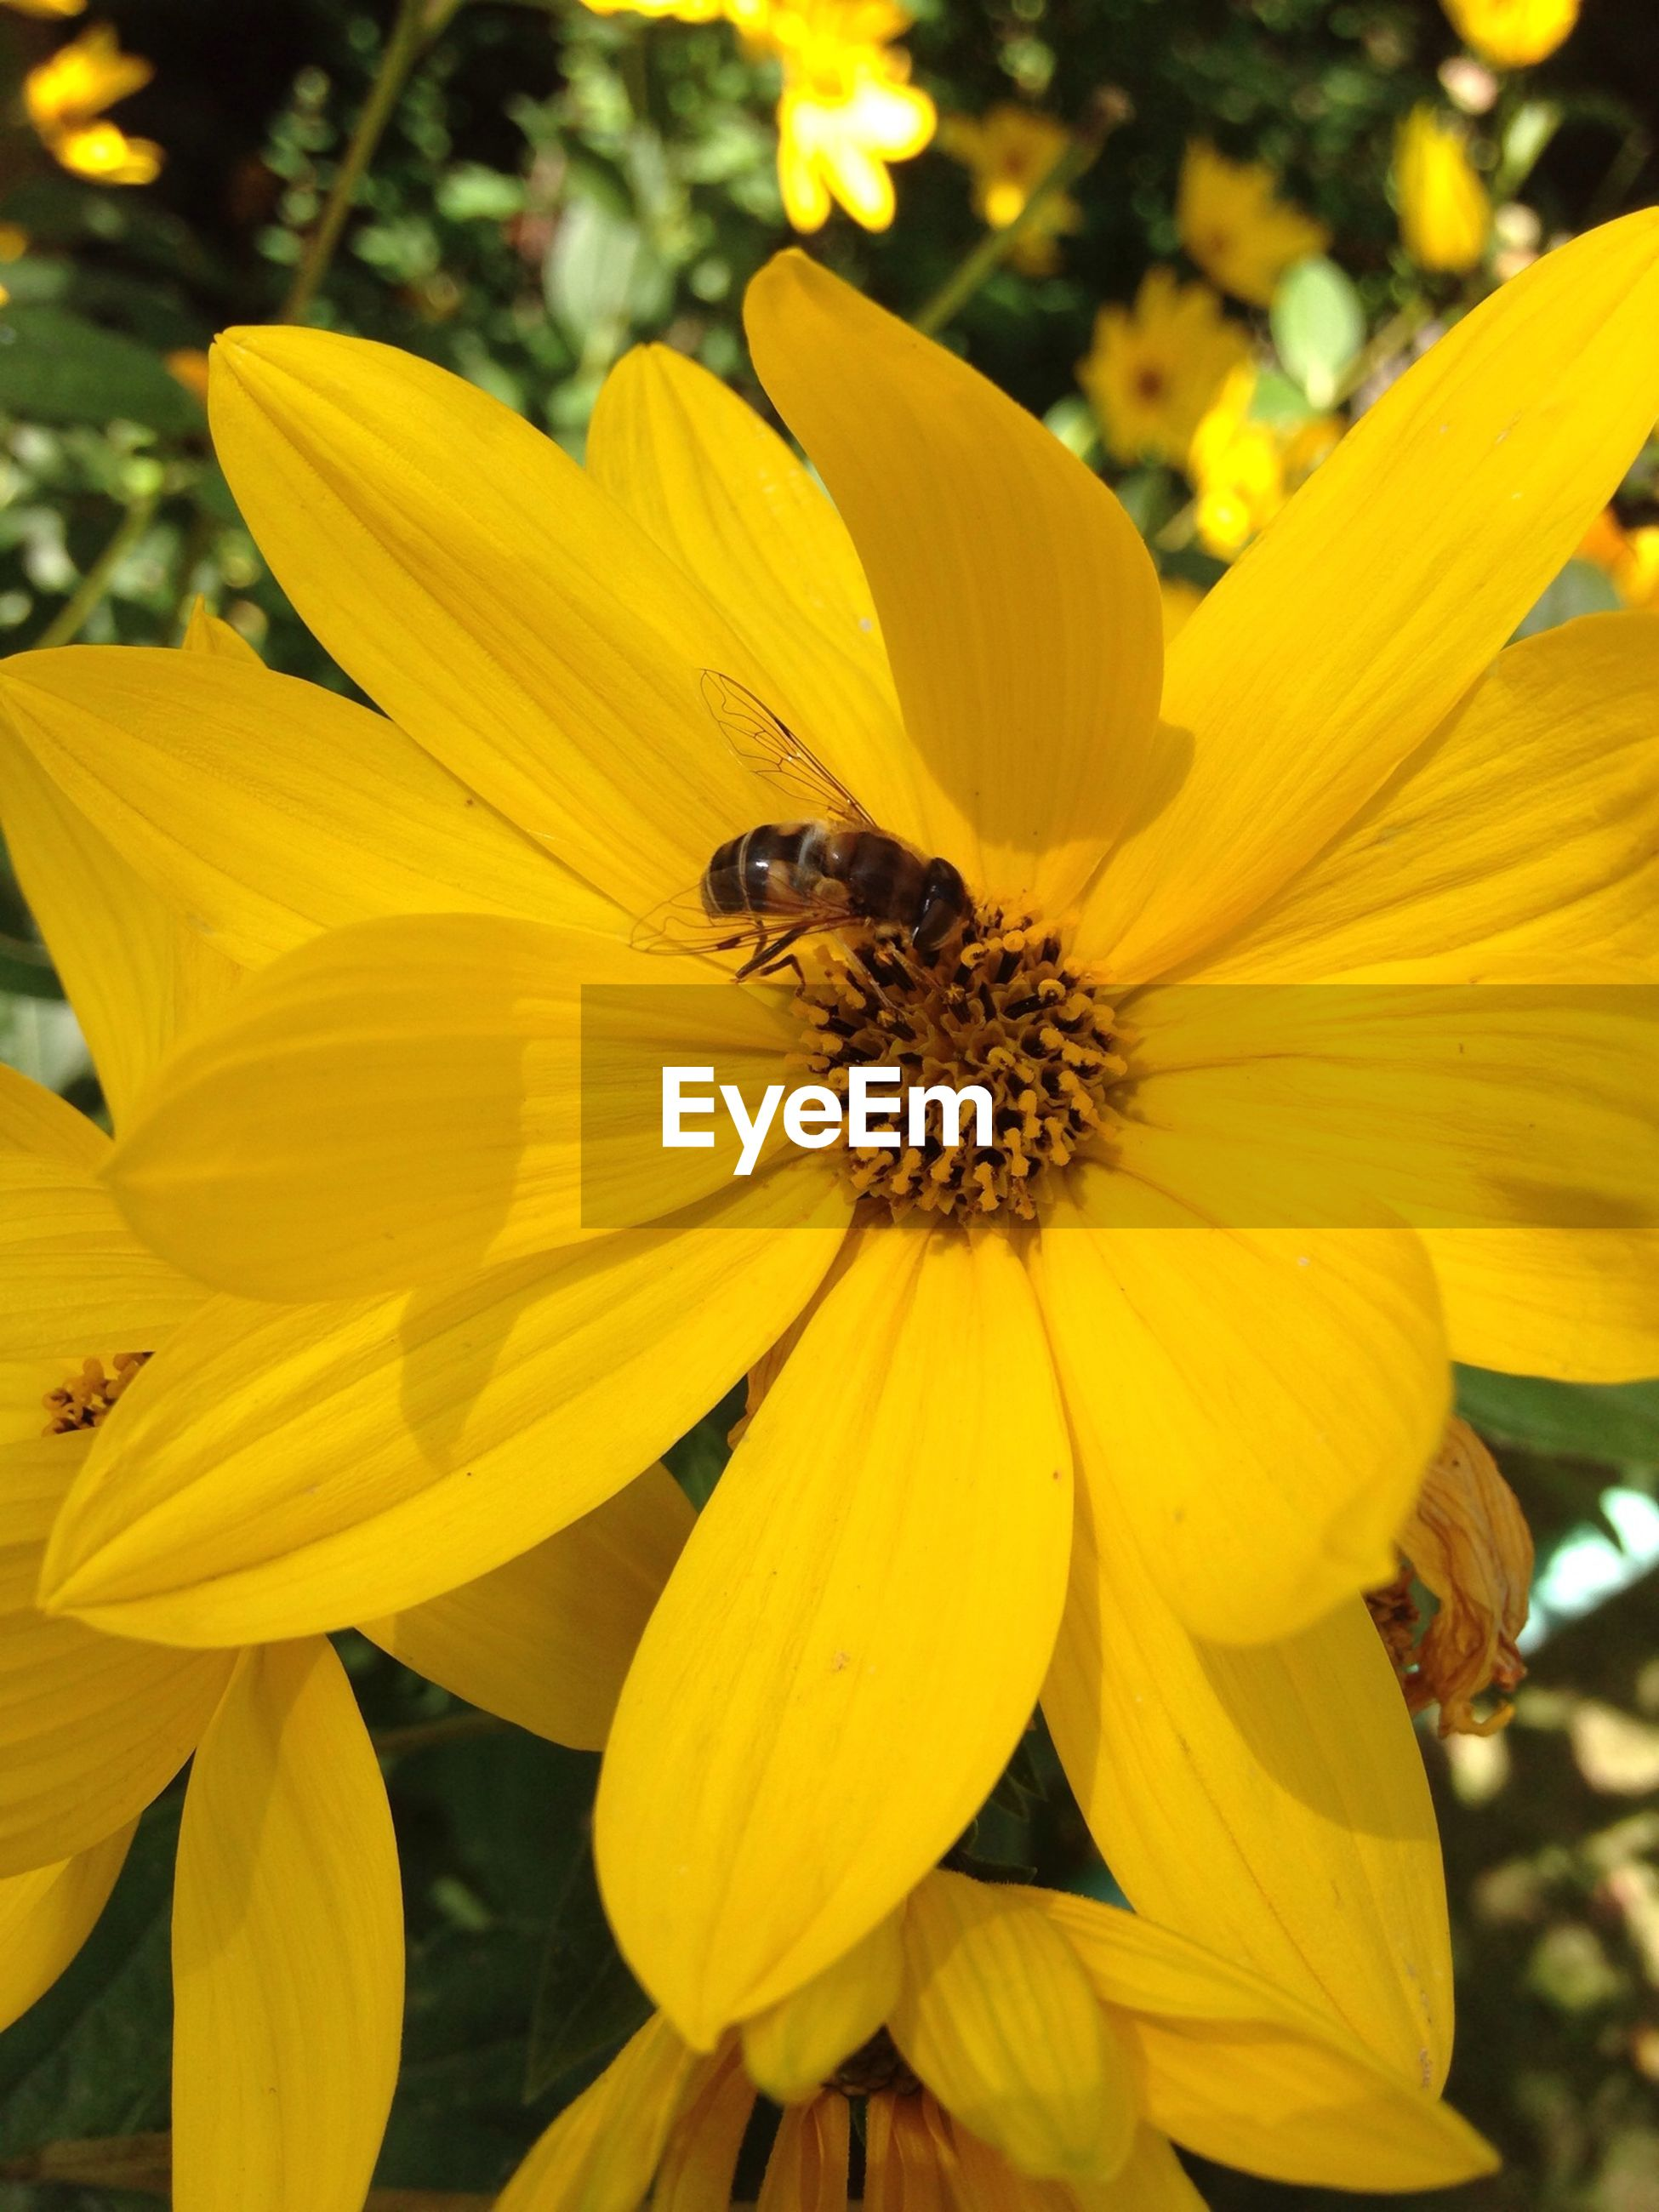 flower, petal, insect, one animal, yellow, animal themes, animals in the wild, freshness, flower head, wildlife, fragility, pollination, bee, pollen, beauty in nature, close-up, growth, nature, focus on foreground, symbiotic relationship